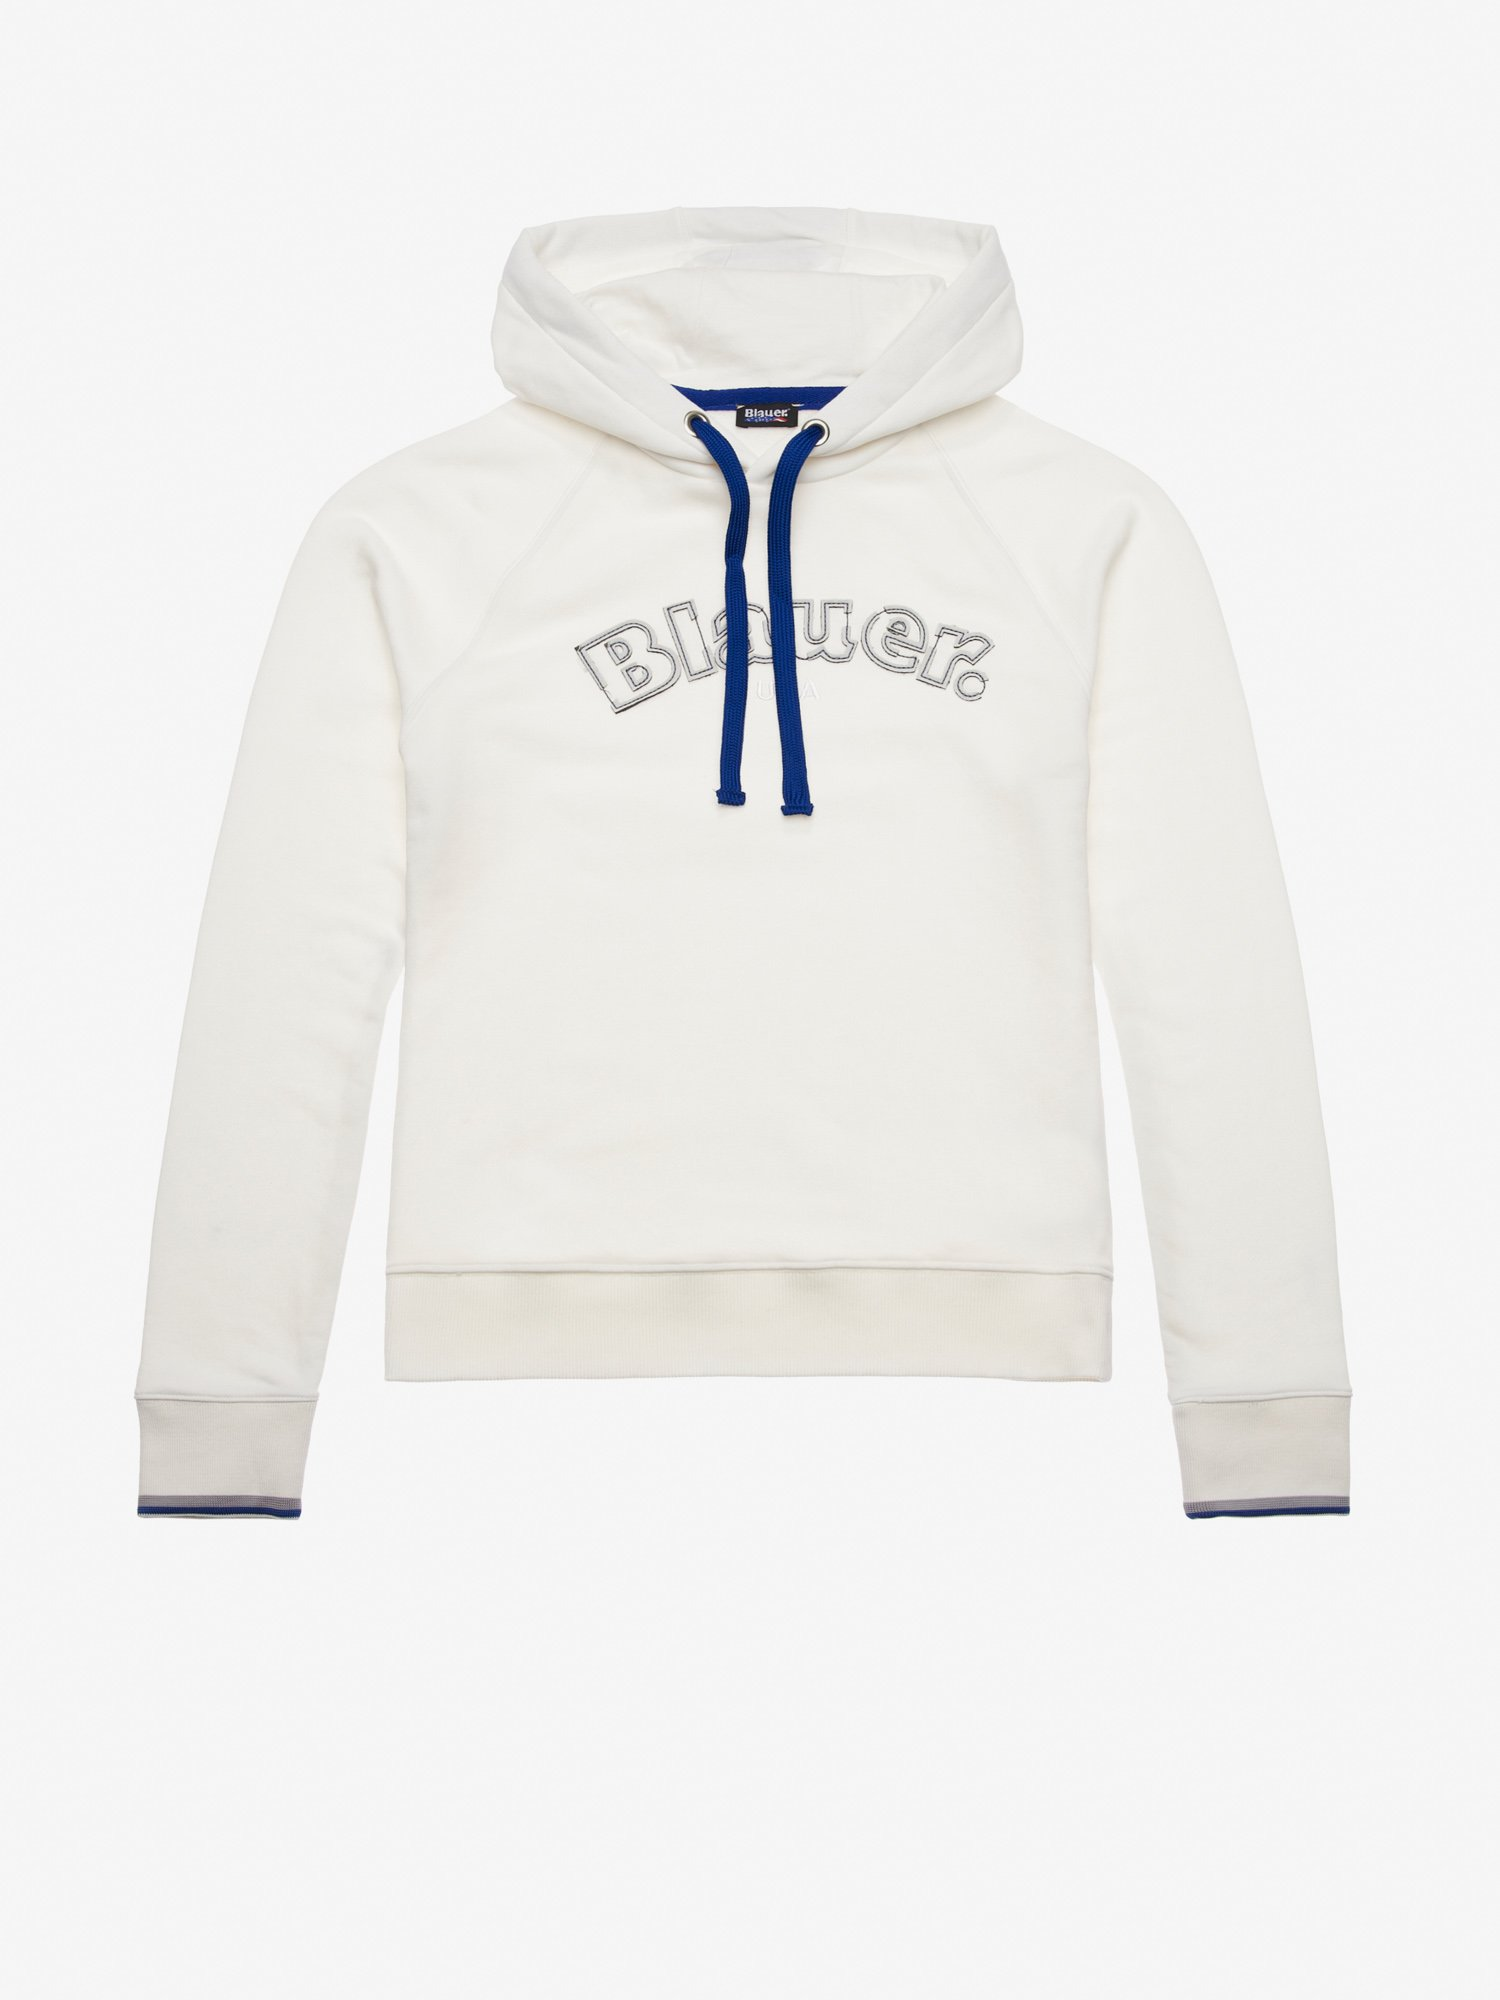 HOODED SWEATSHIRT WITH CONTRASTING COLOUR DETAILS - Blauer